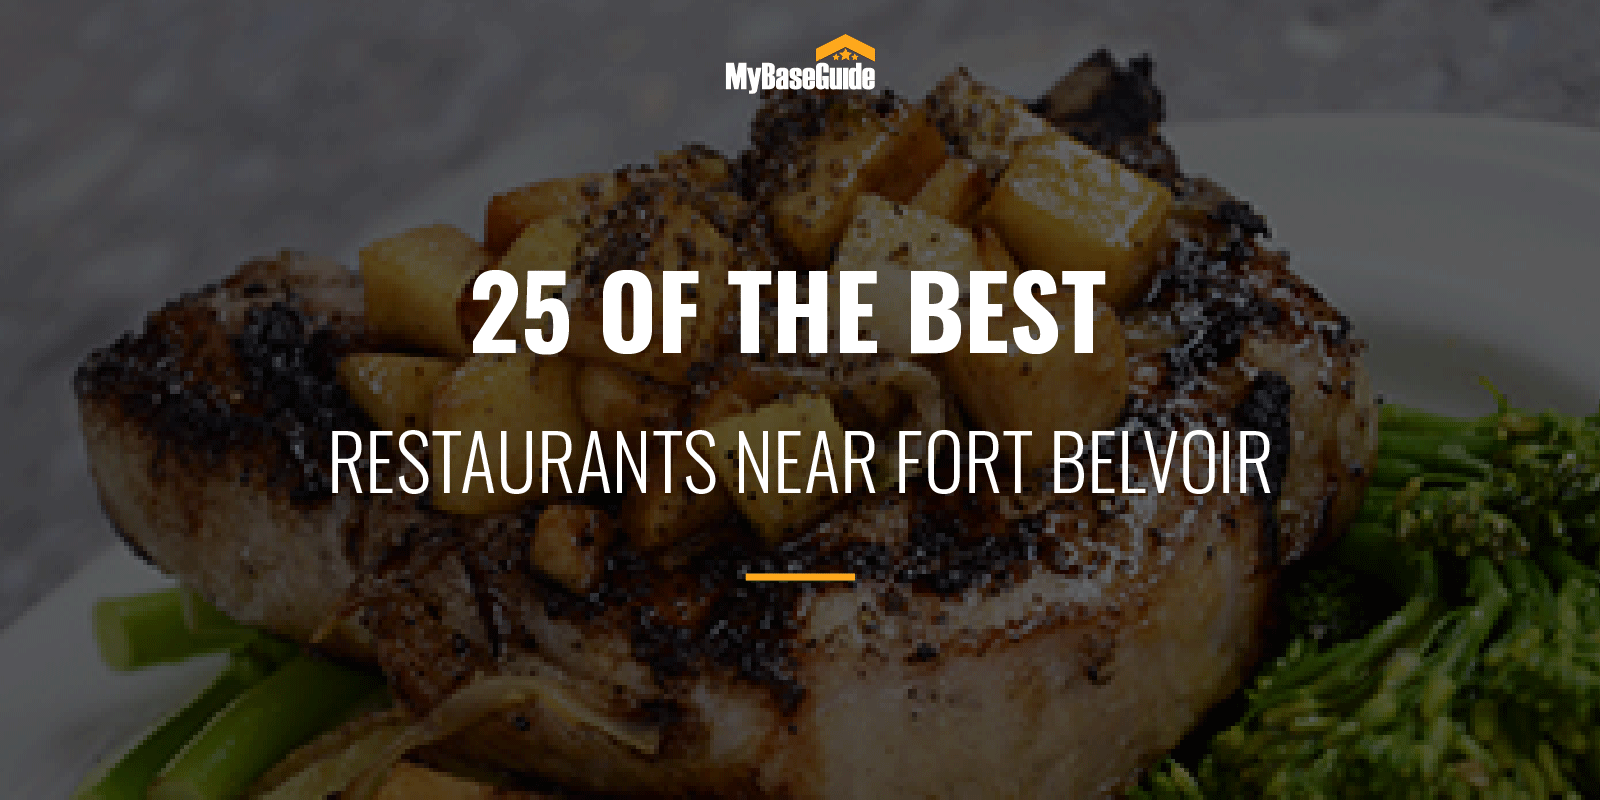 Best Restaurants near Fort Belvoir